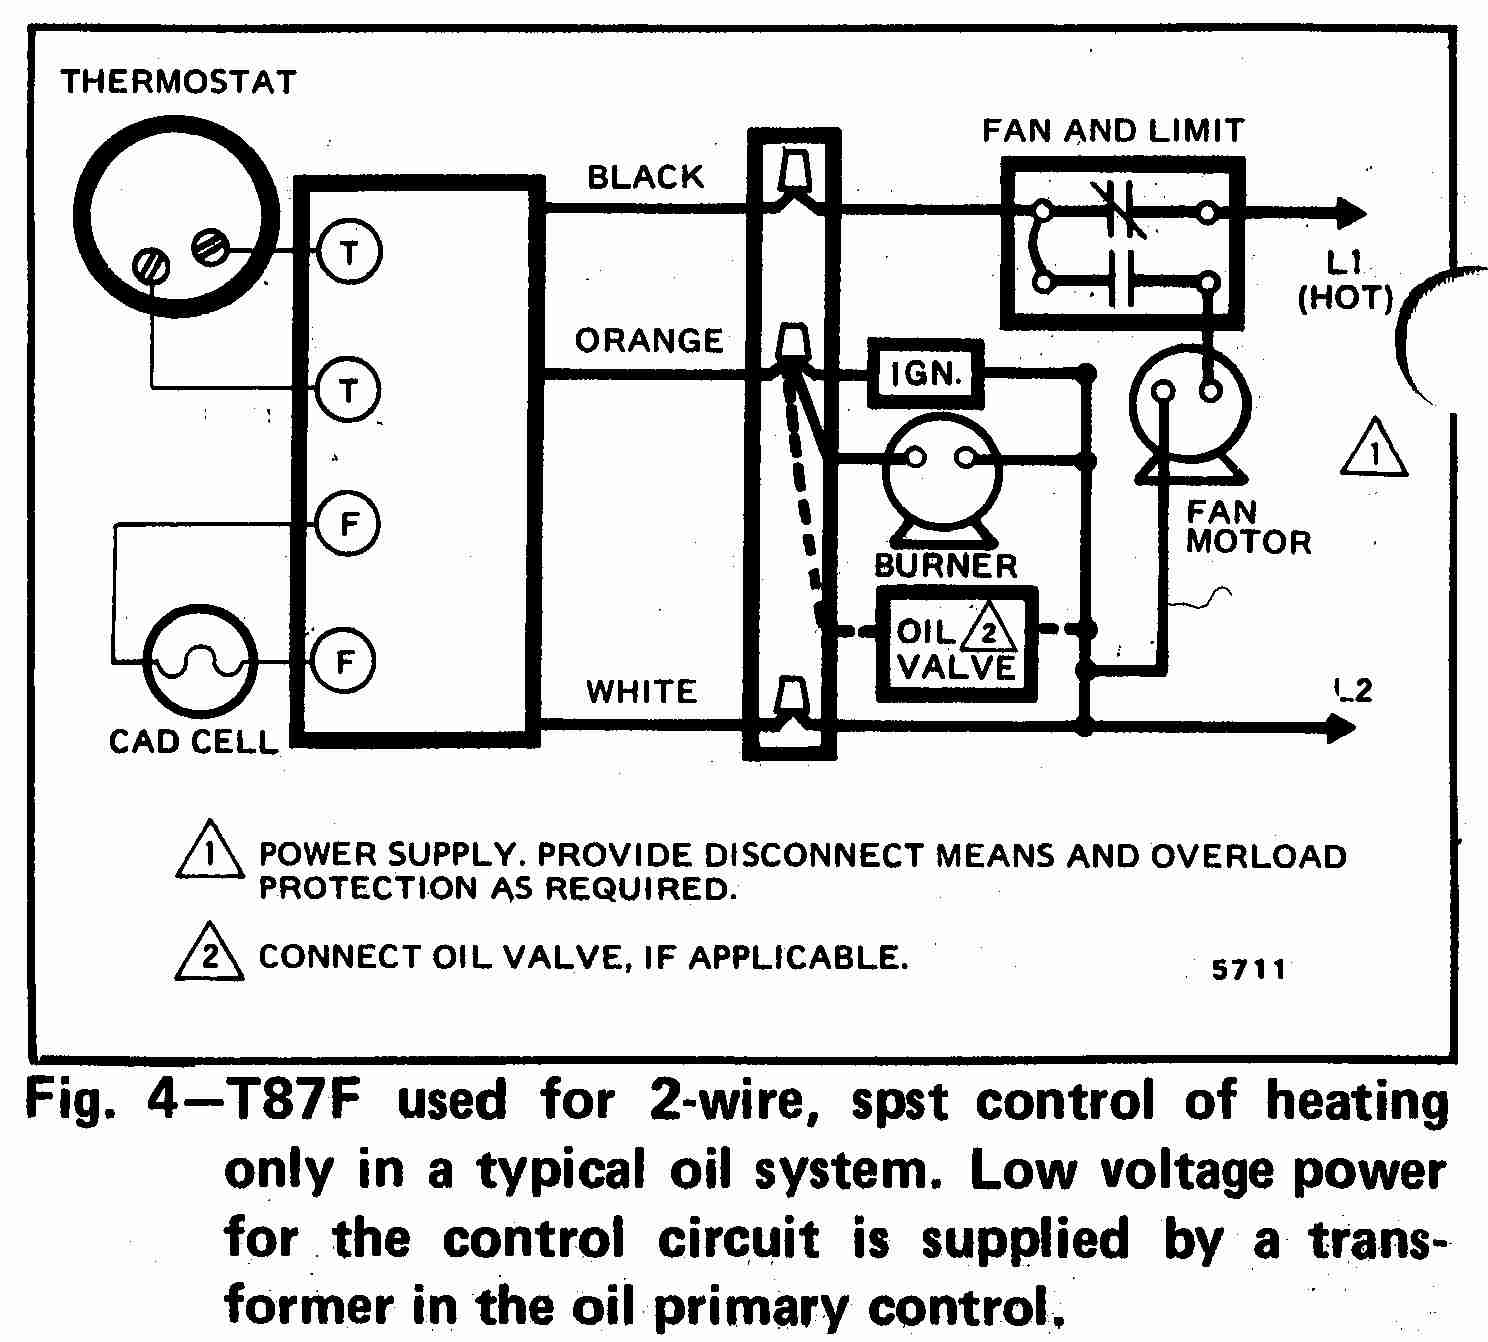 TT_T87F_0002_2W_DJF room thermostat wiring diagrams for hvac systems honeywell wiring diagrams at reclaimingppi.co